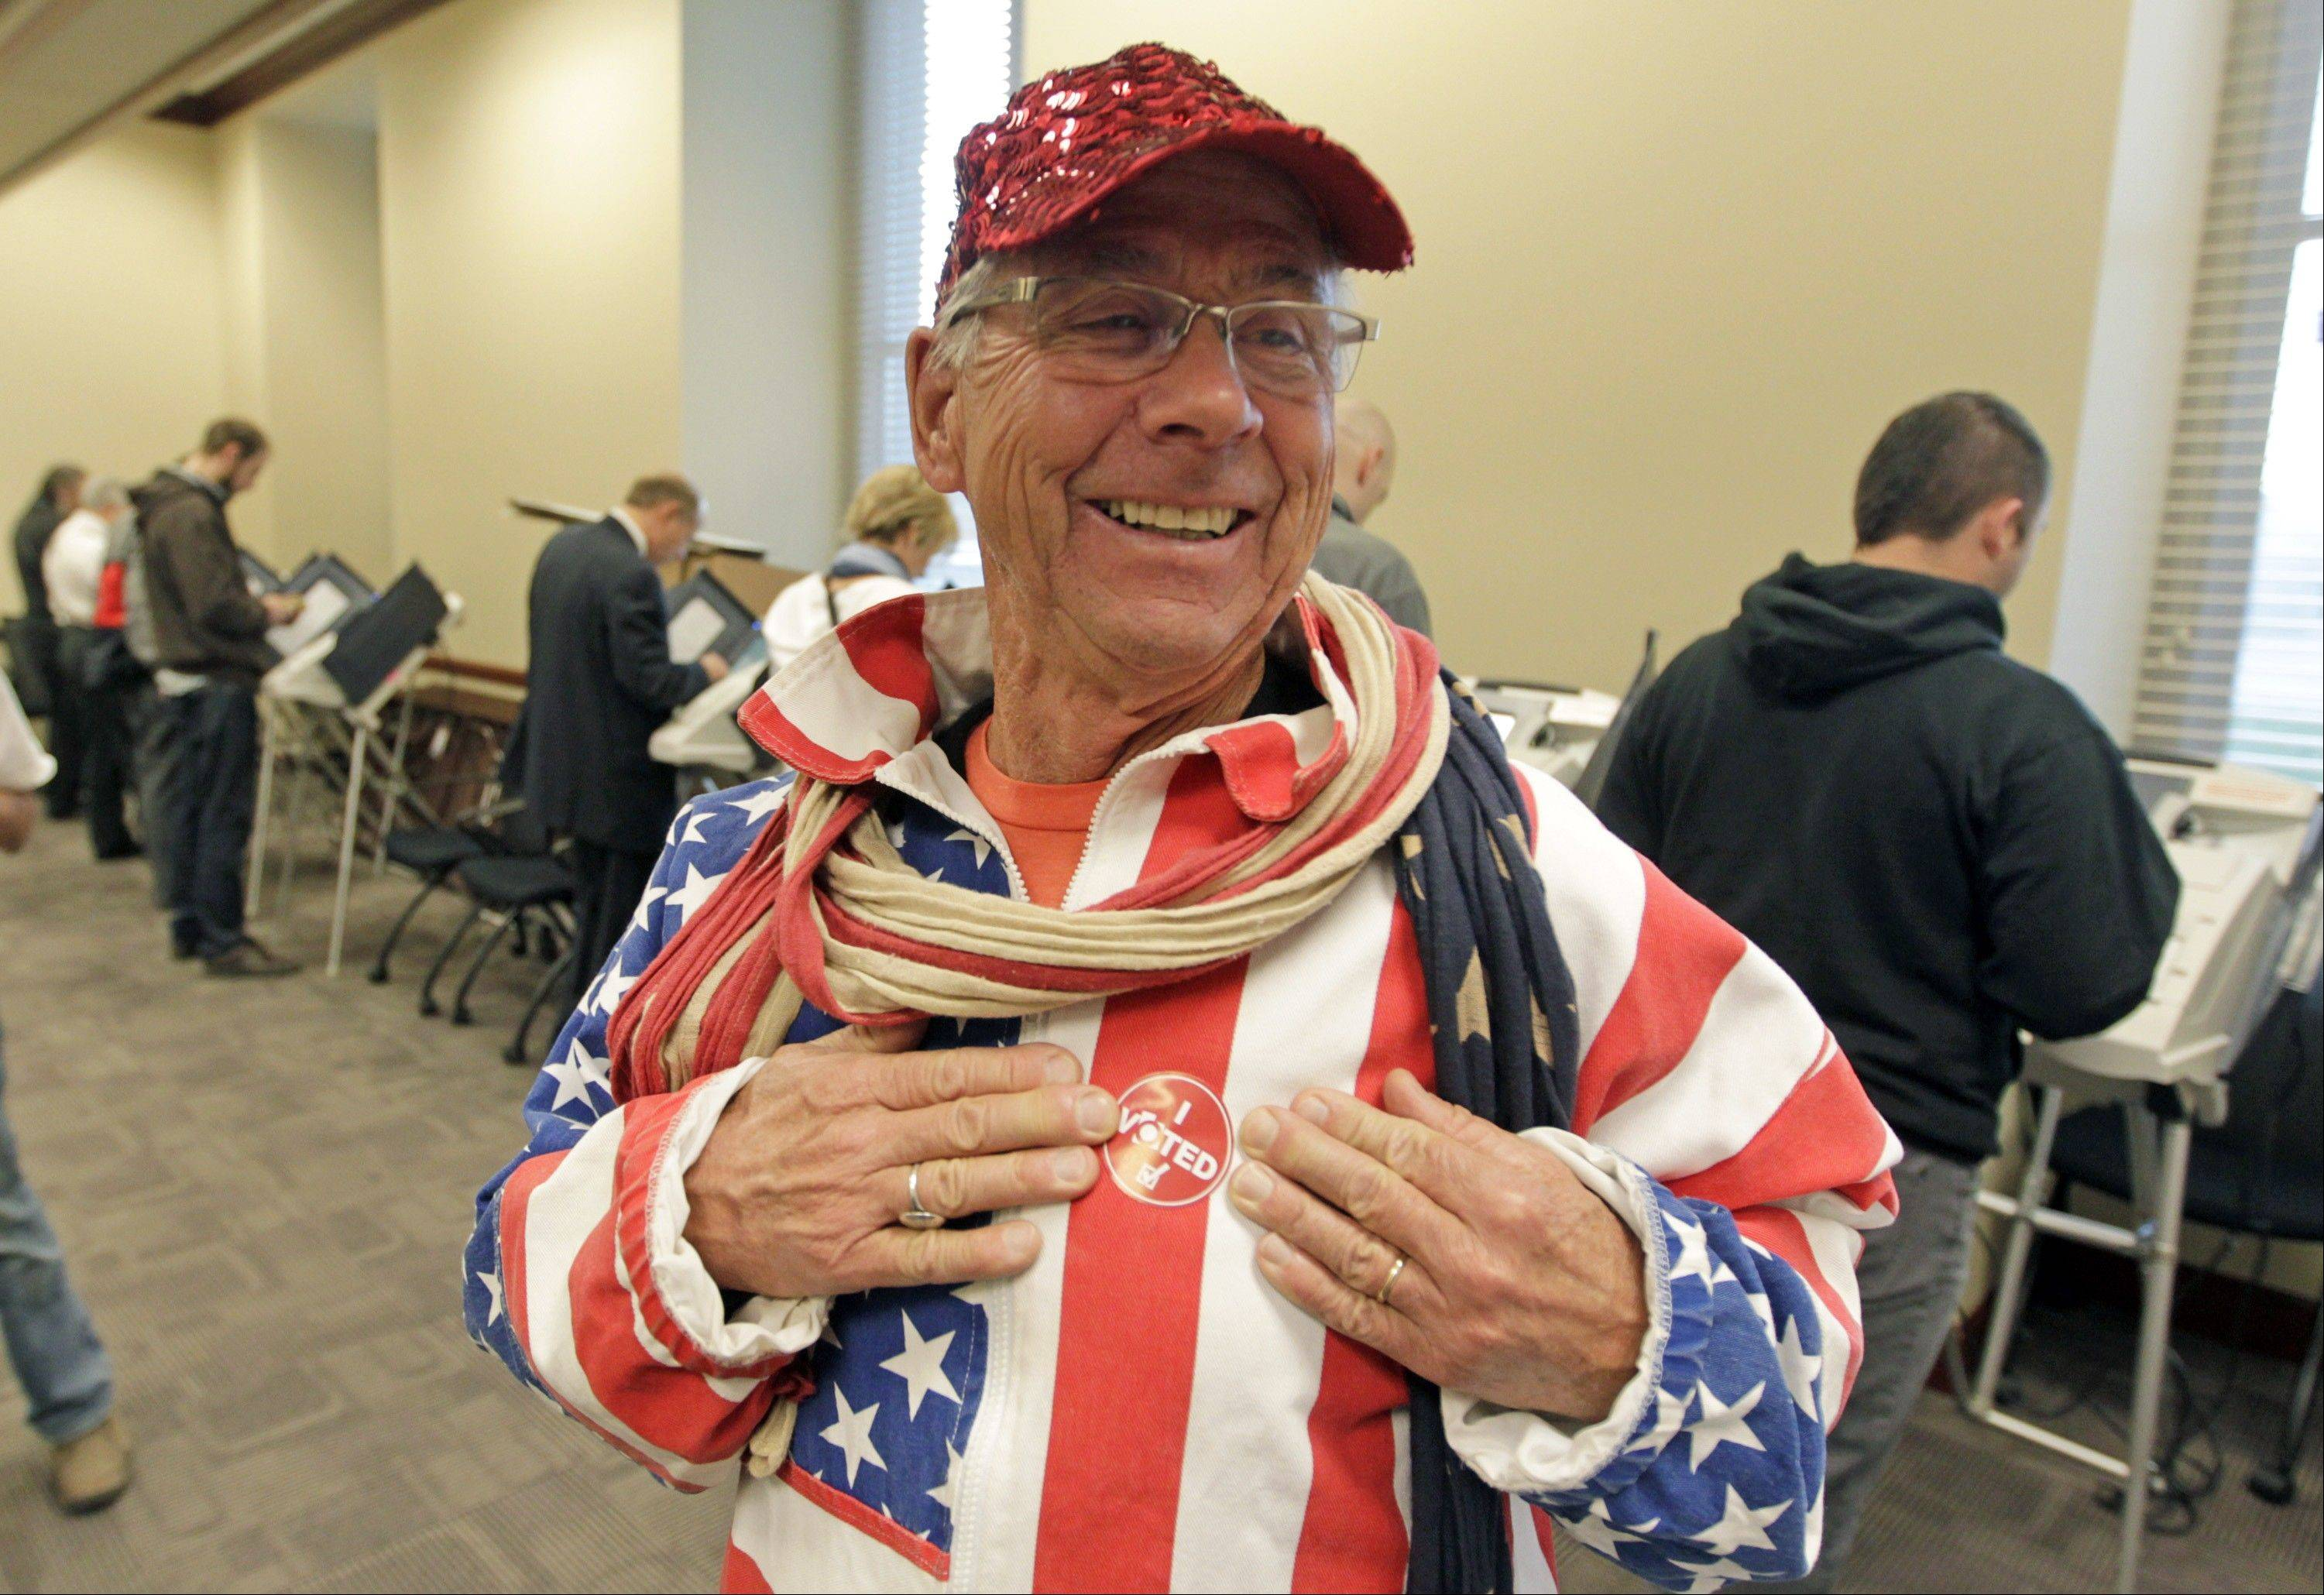 Mark Jensen, 66, dressed as a flag, displays his I voted sticker after voting at the Utah State Capitol Tuesday, Nov. 6, 2012, in Salt Lake City.